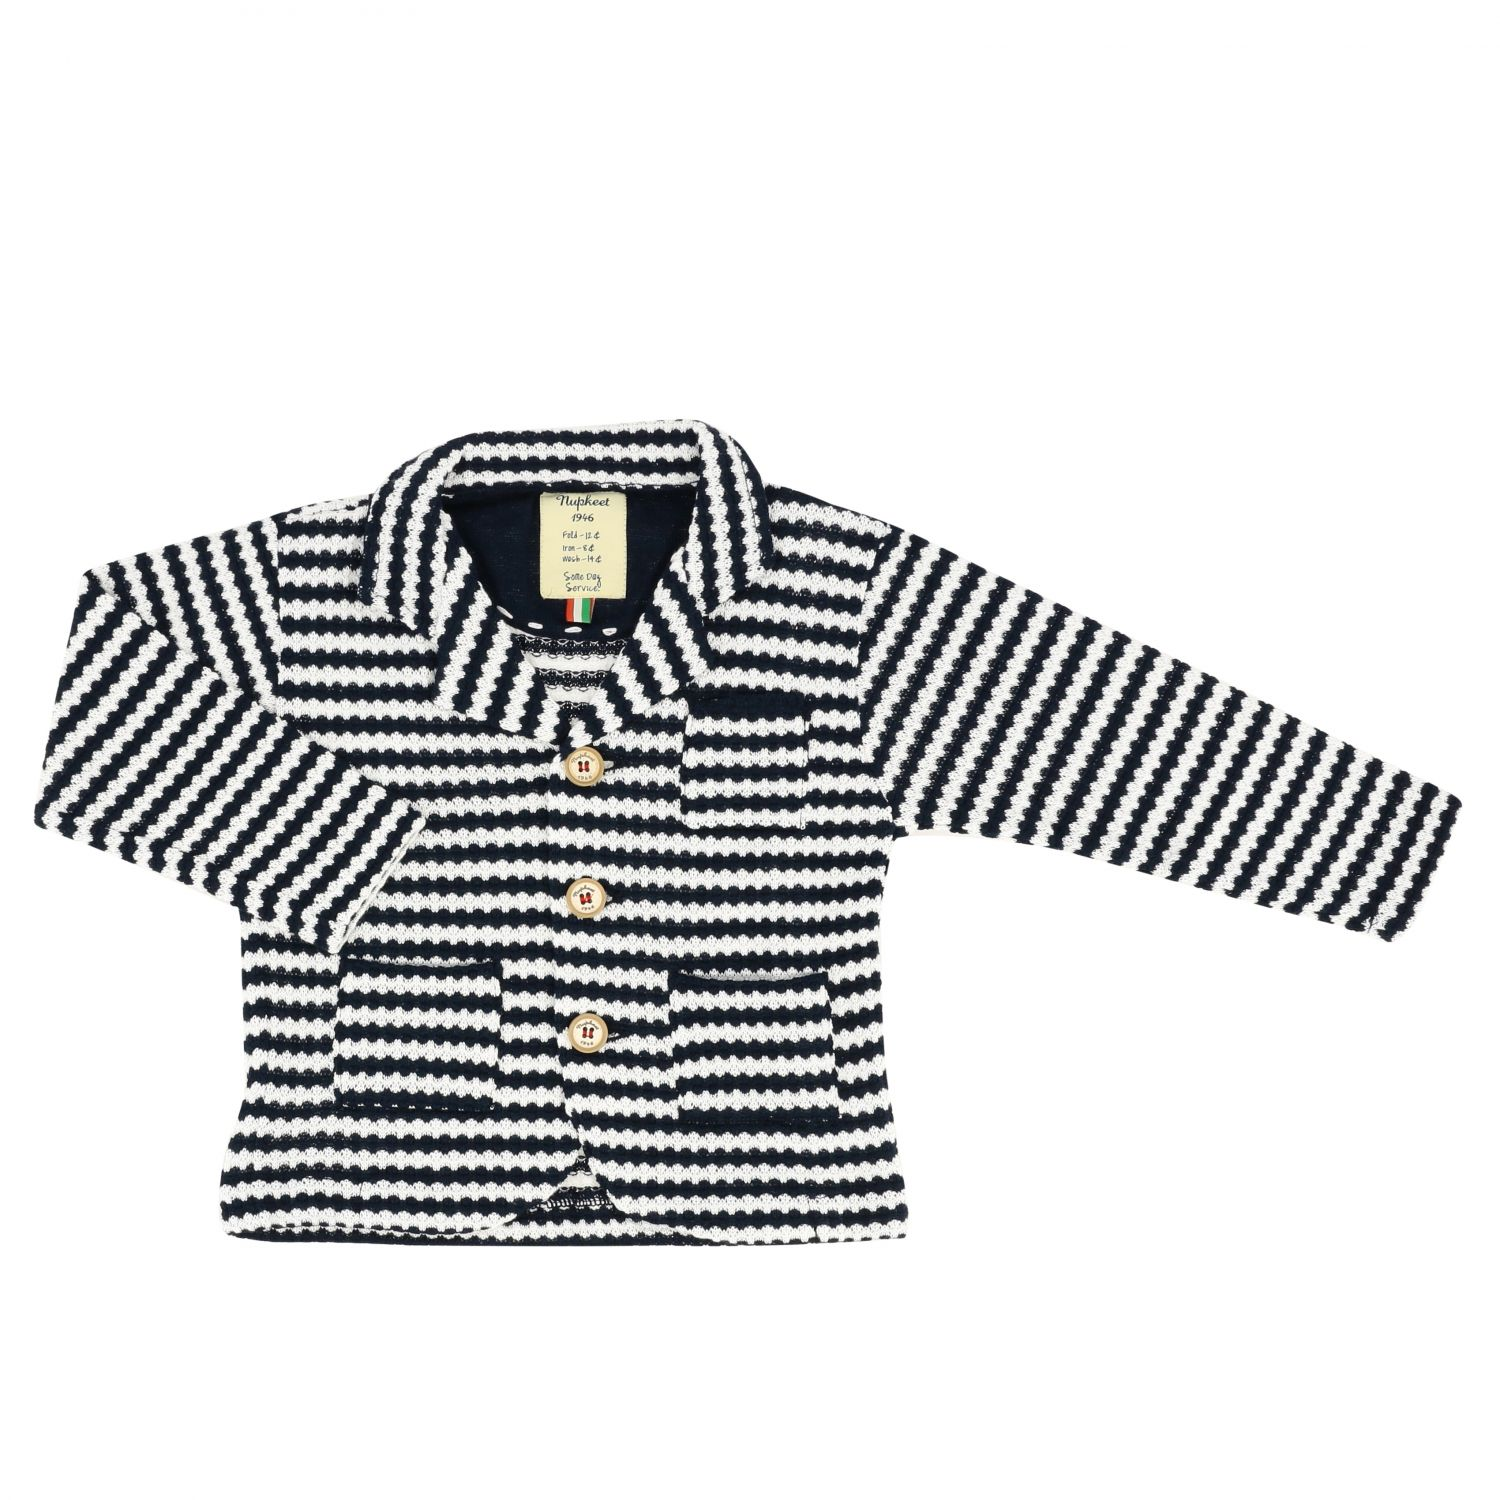 Nupkeet striped knitted jacket blue 1